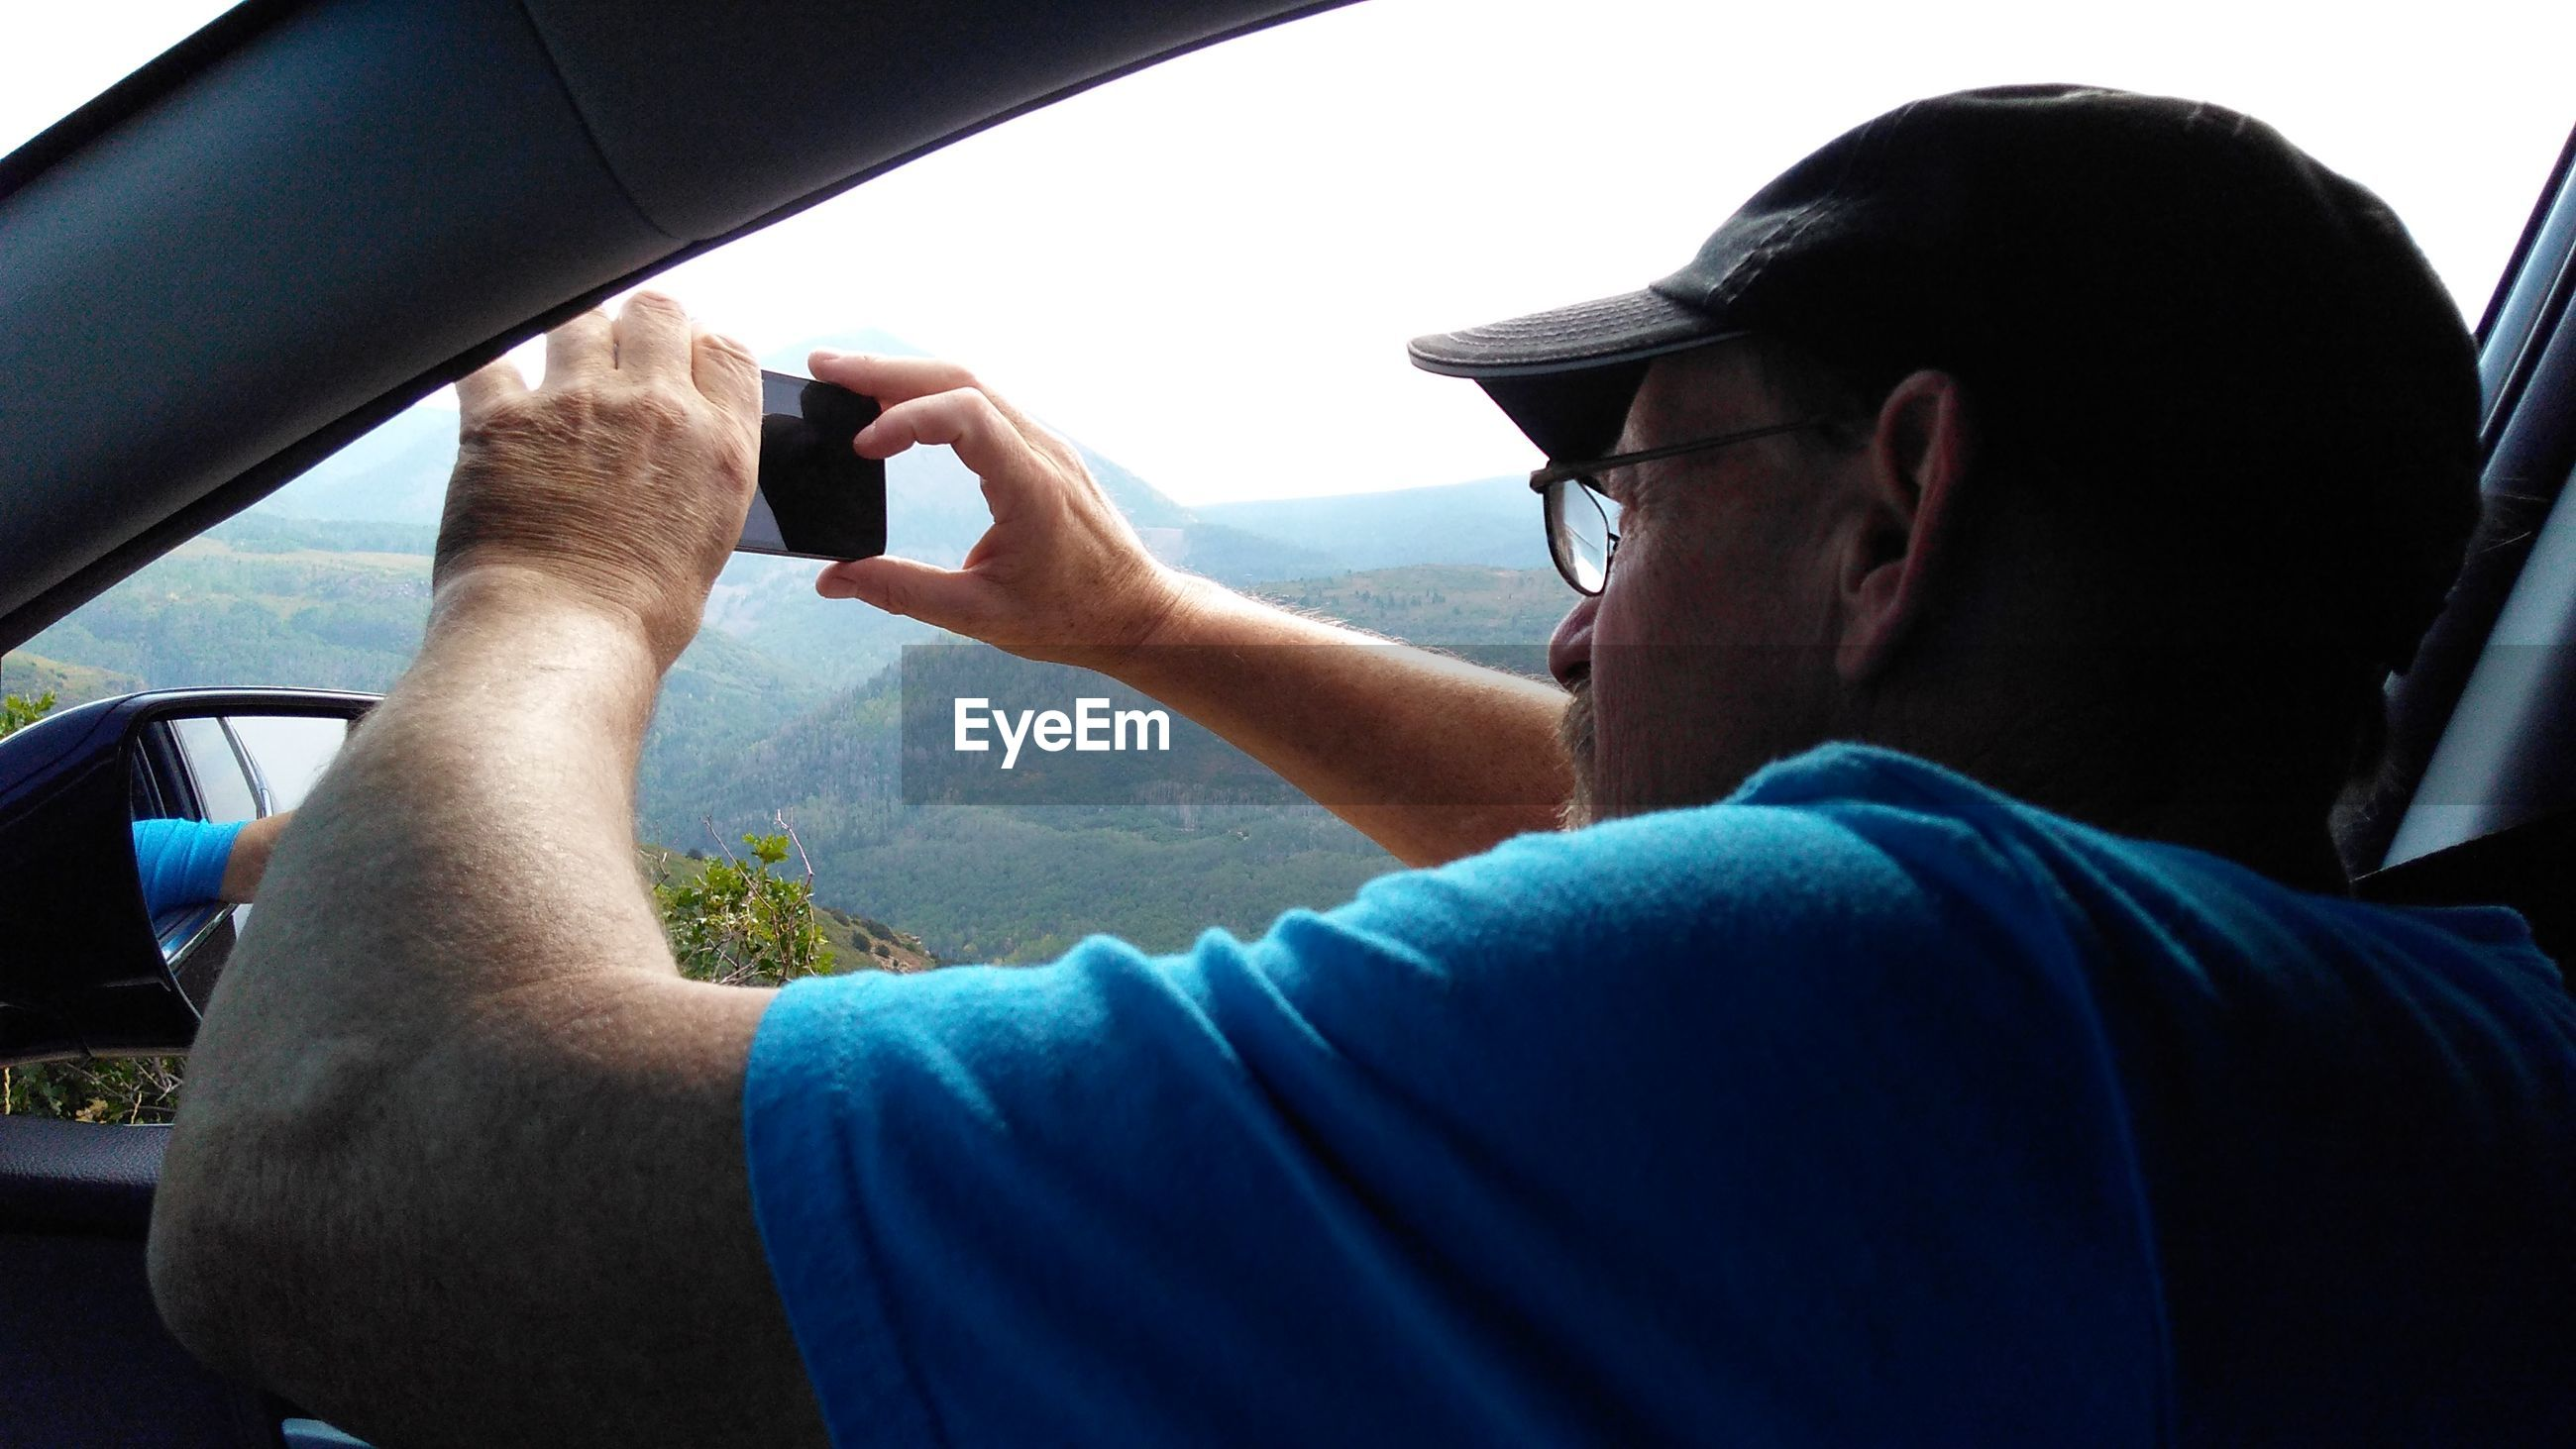 Close-up of man photographing from car window